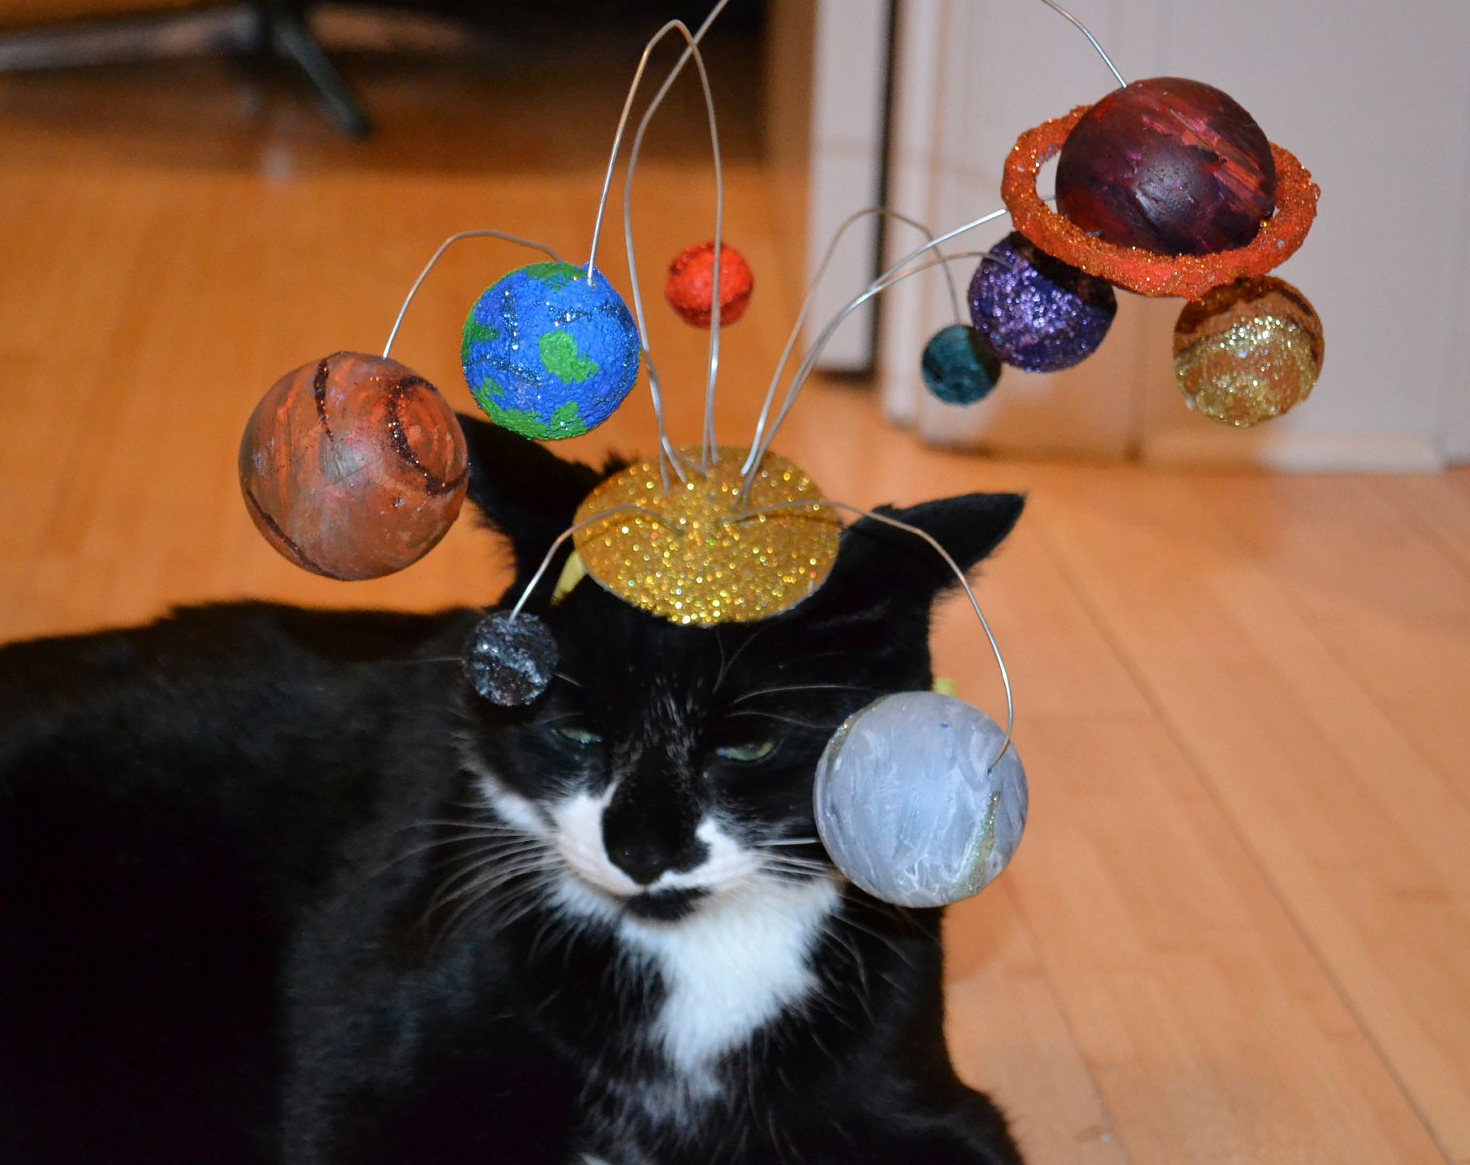 http://notsokitty.com/2012/07/22/planetary-fascinator/